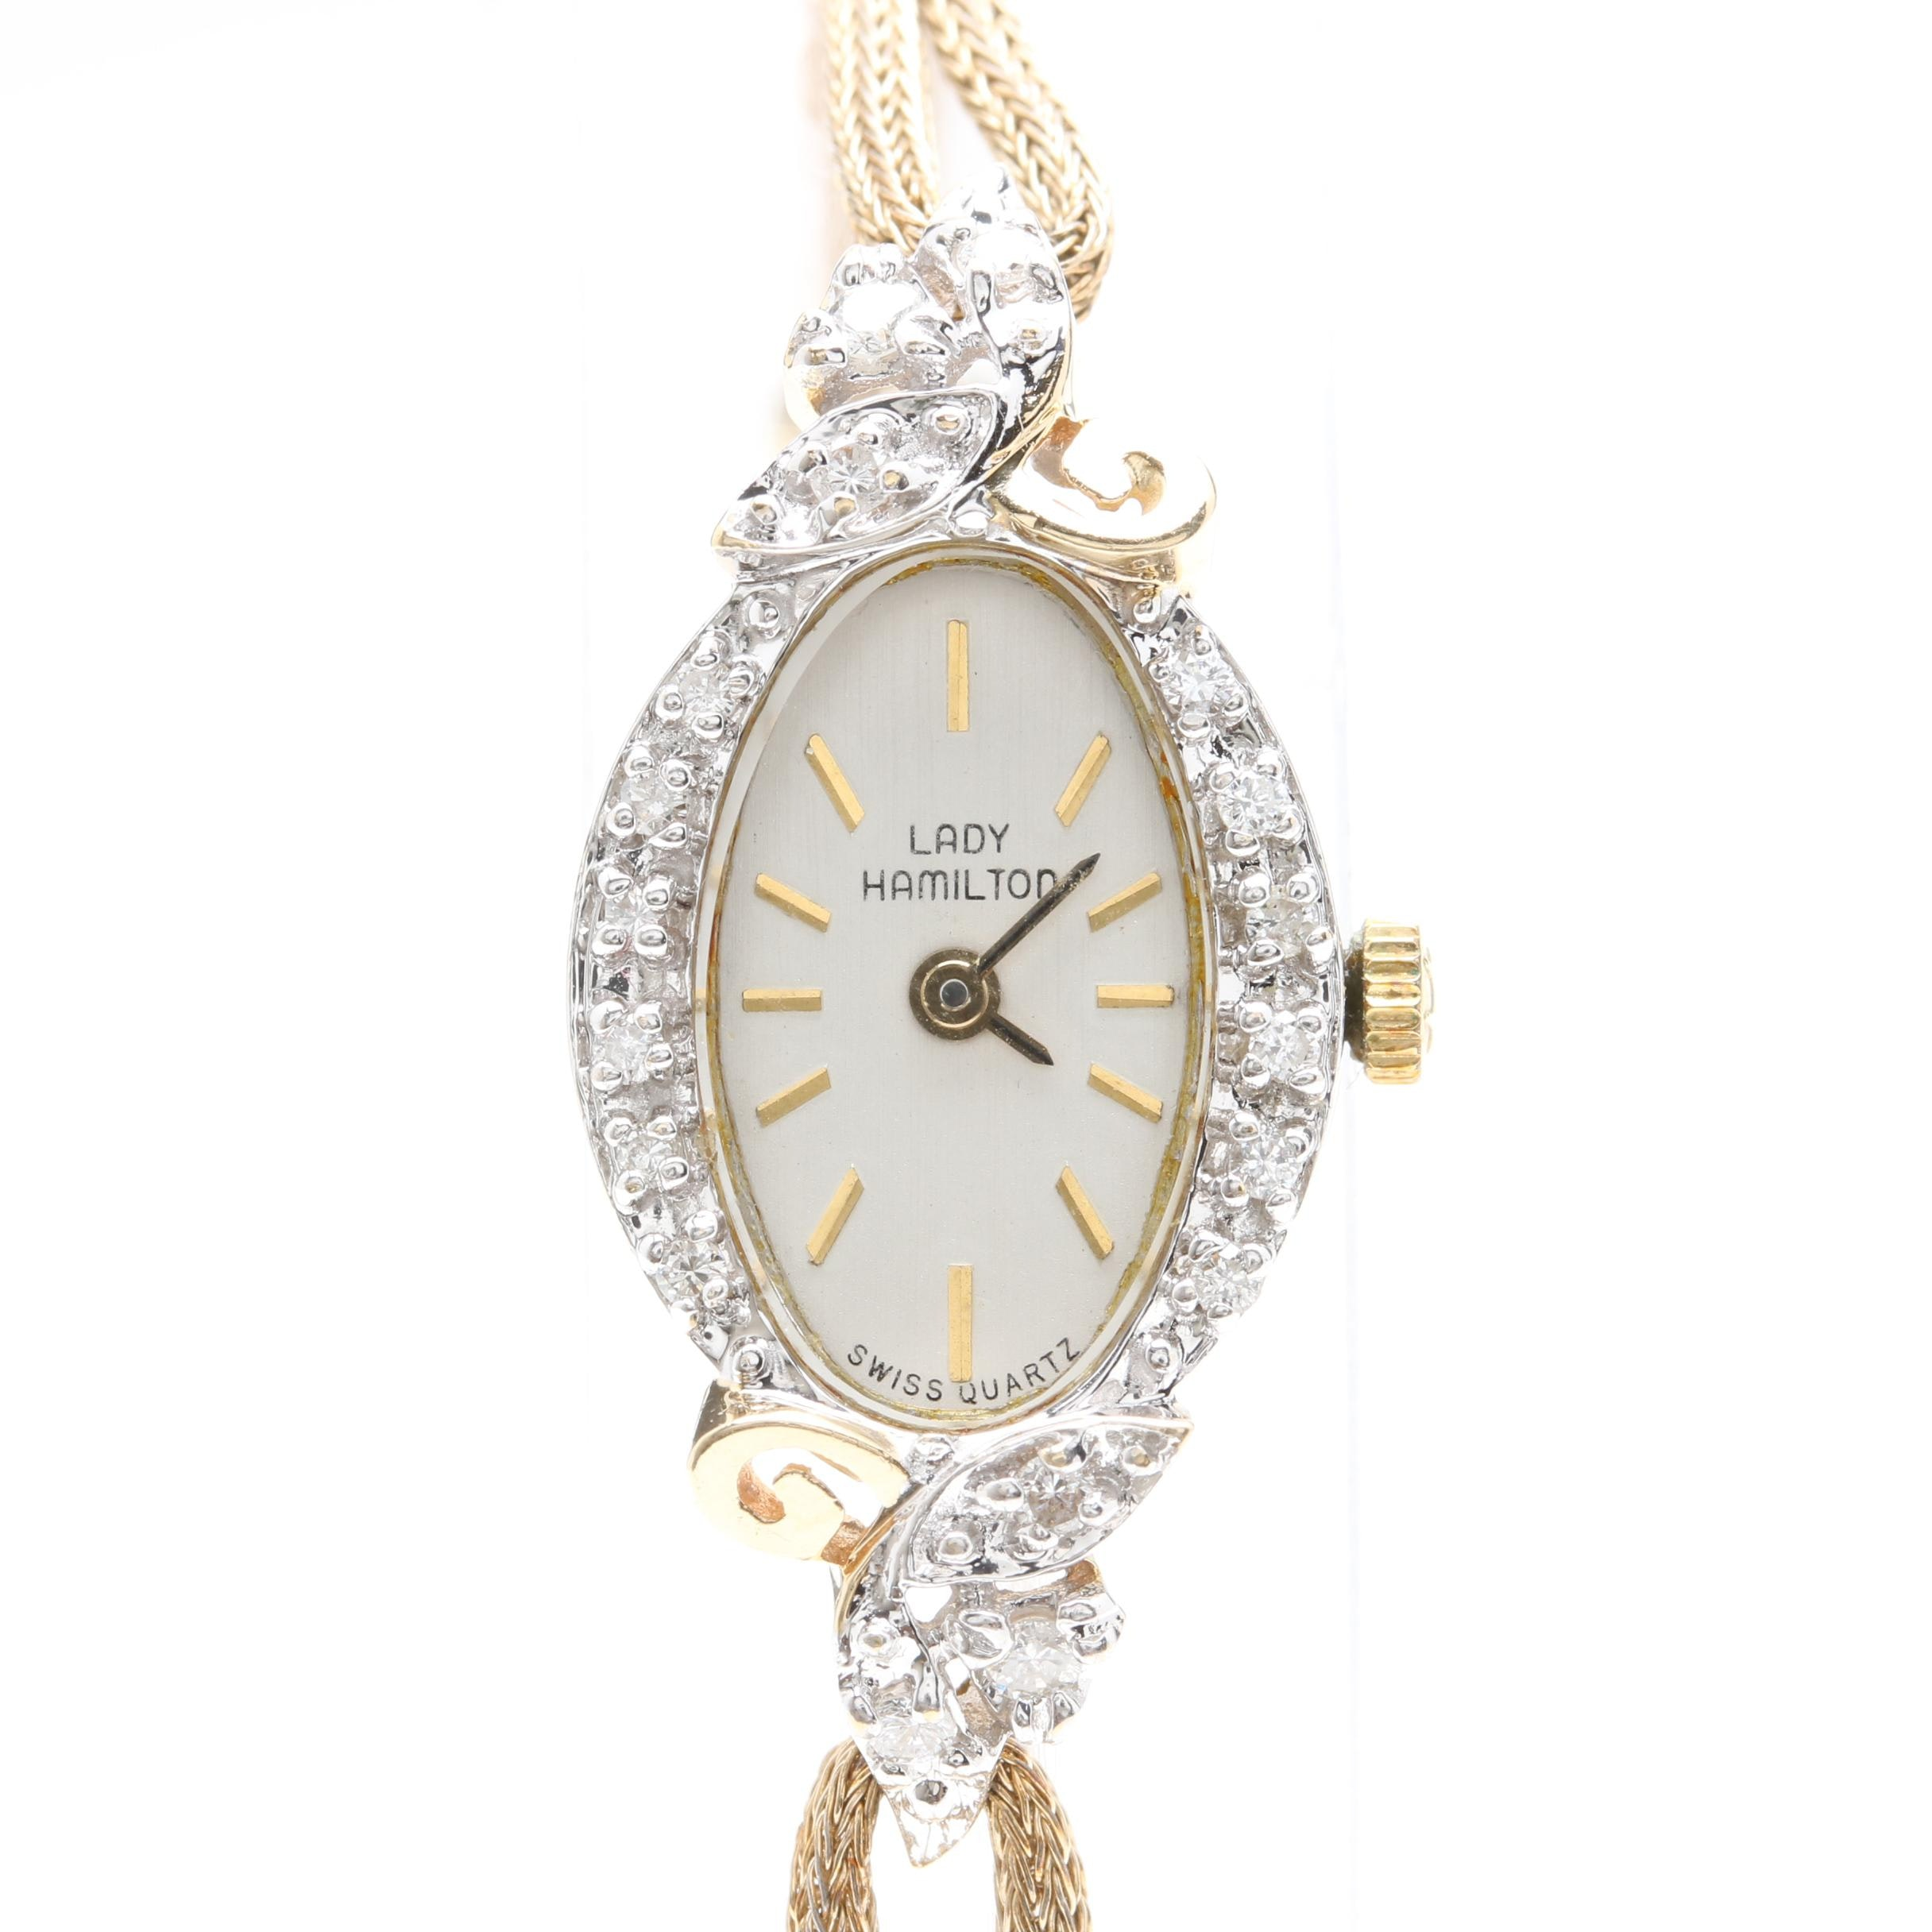 Lady Hamilton 14K Yellow Gold Diamond Watch